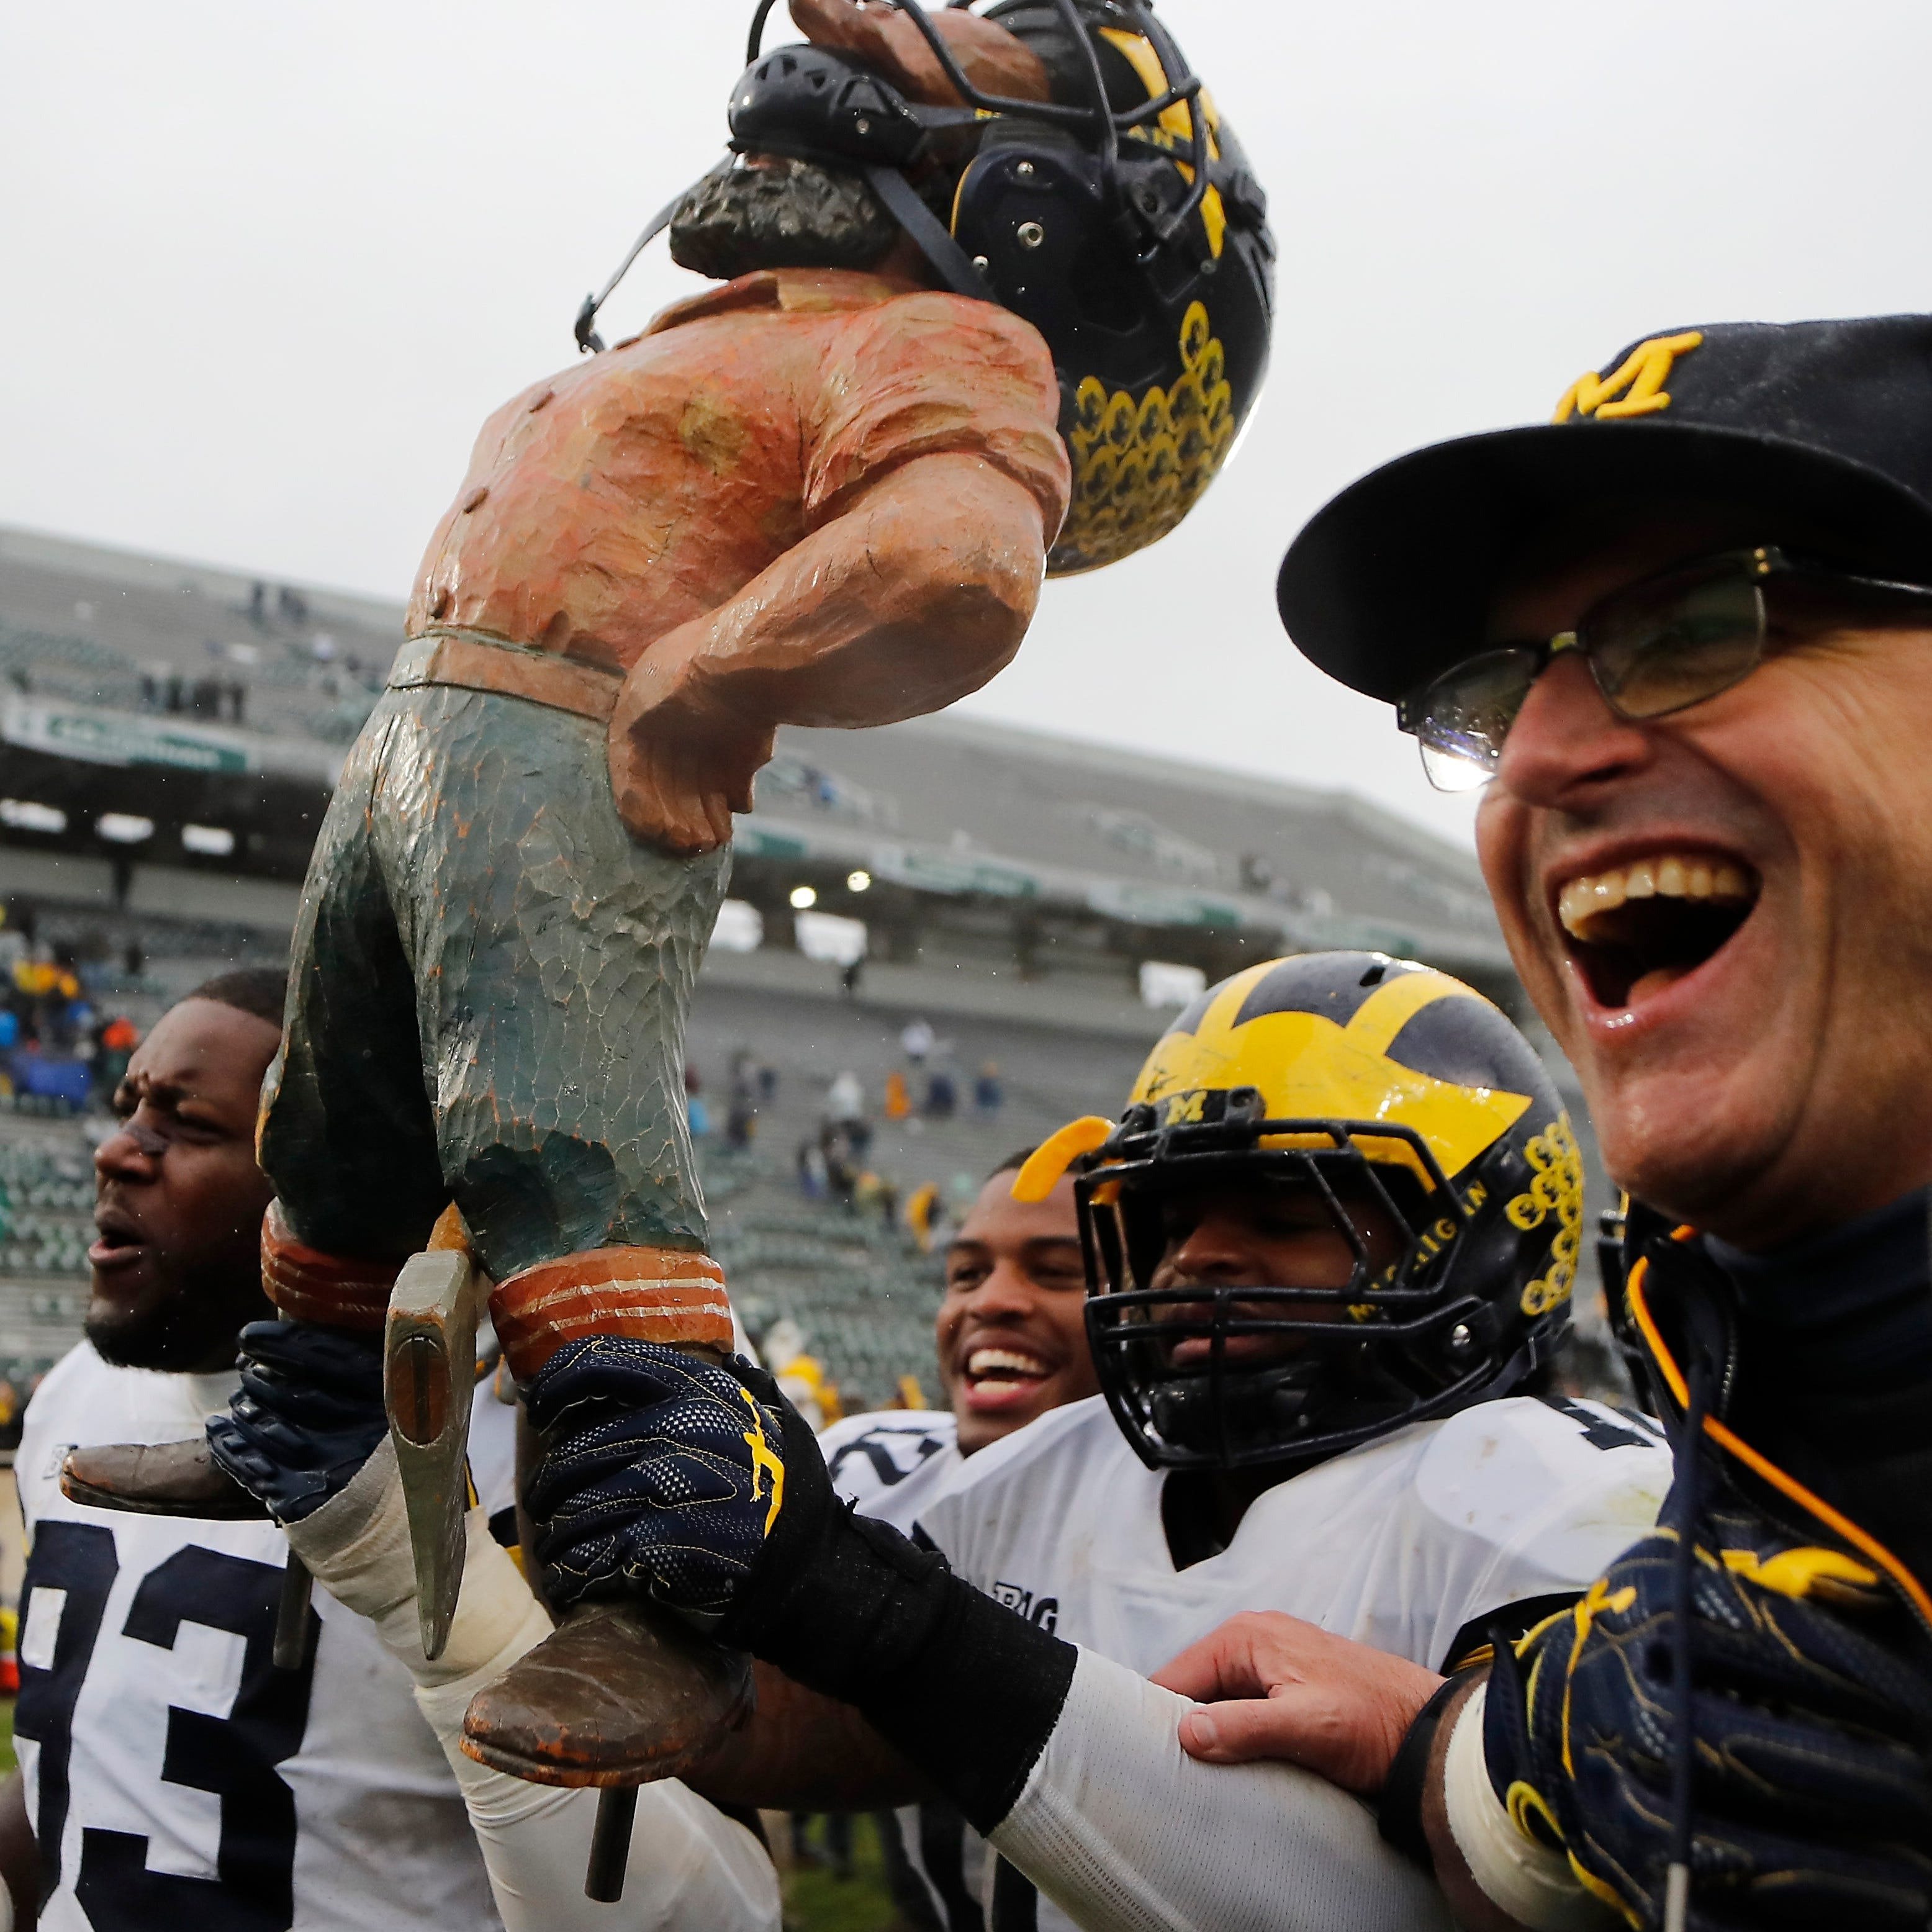 Michigan's Jim Harbaugh rips MSU again, doubles down on 'bush league'